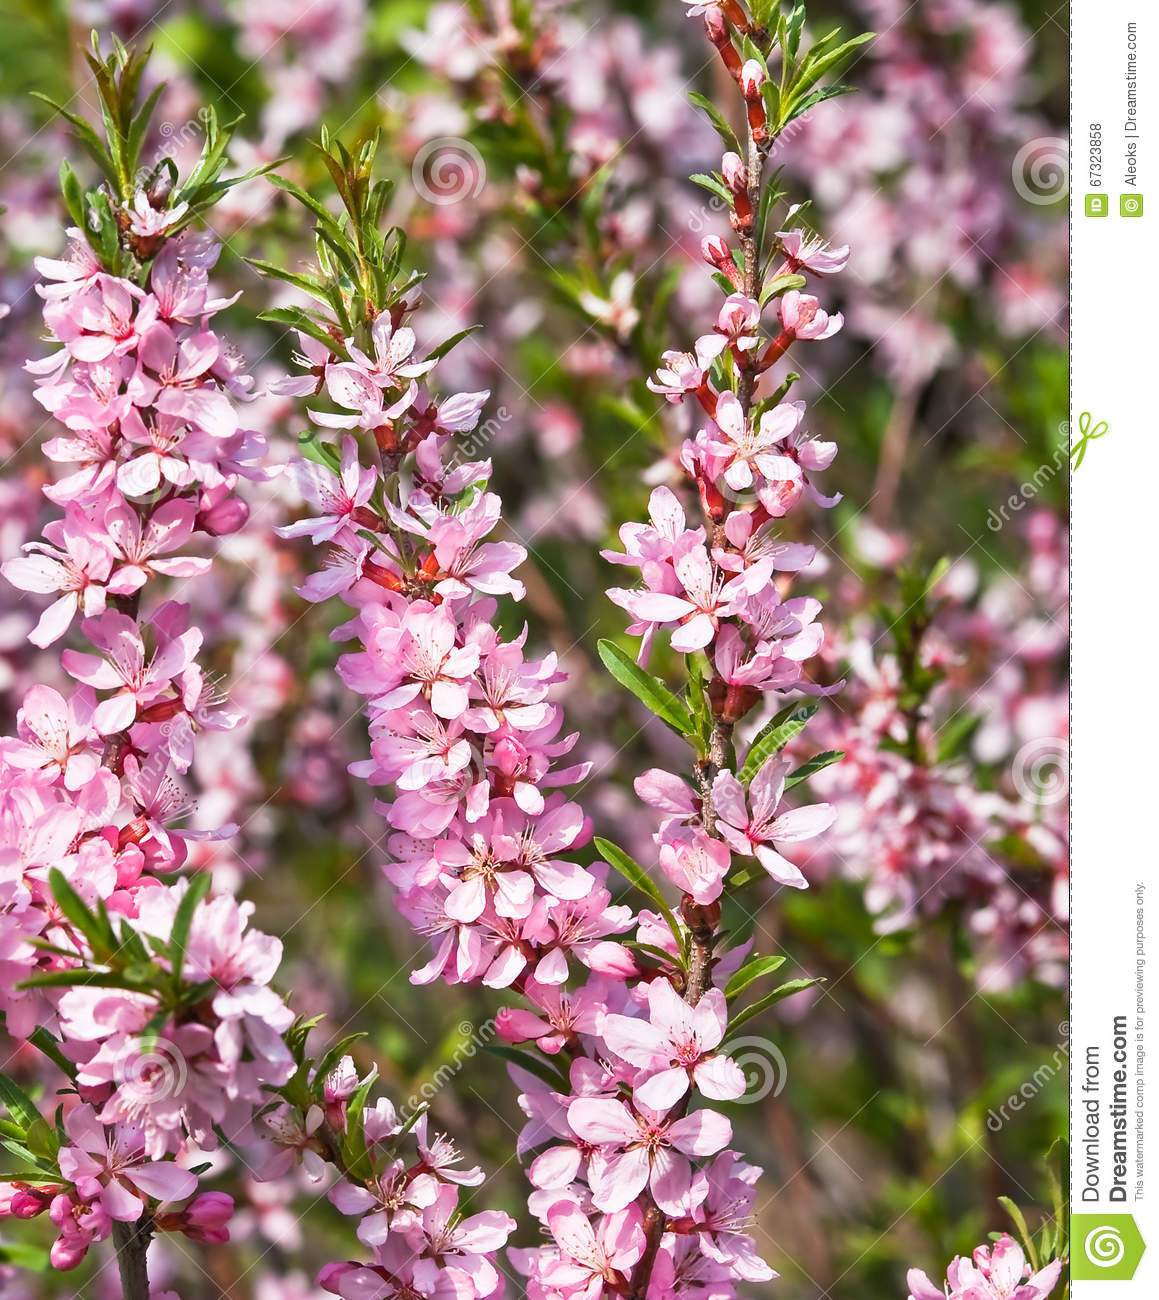 Flowering Almond Steppe Stock Image